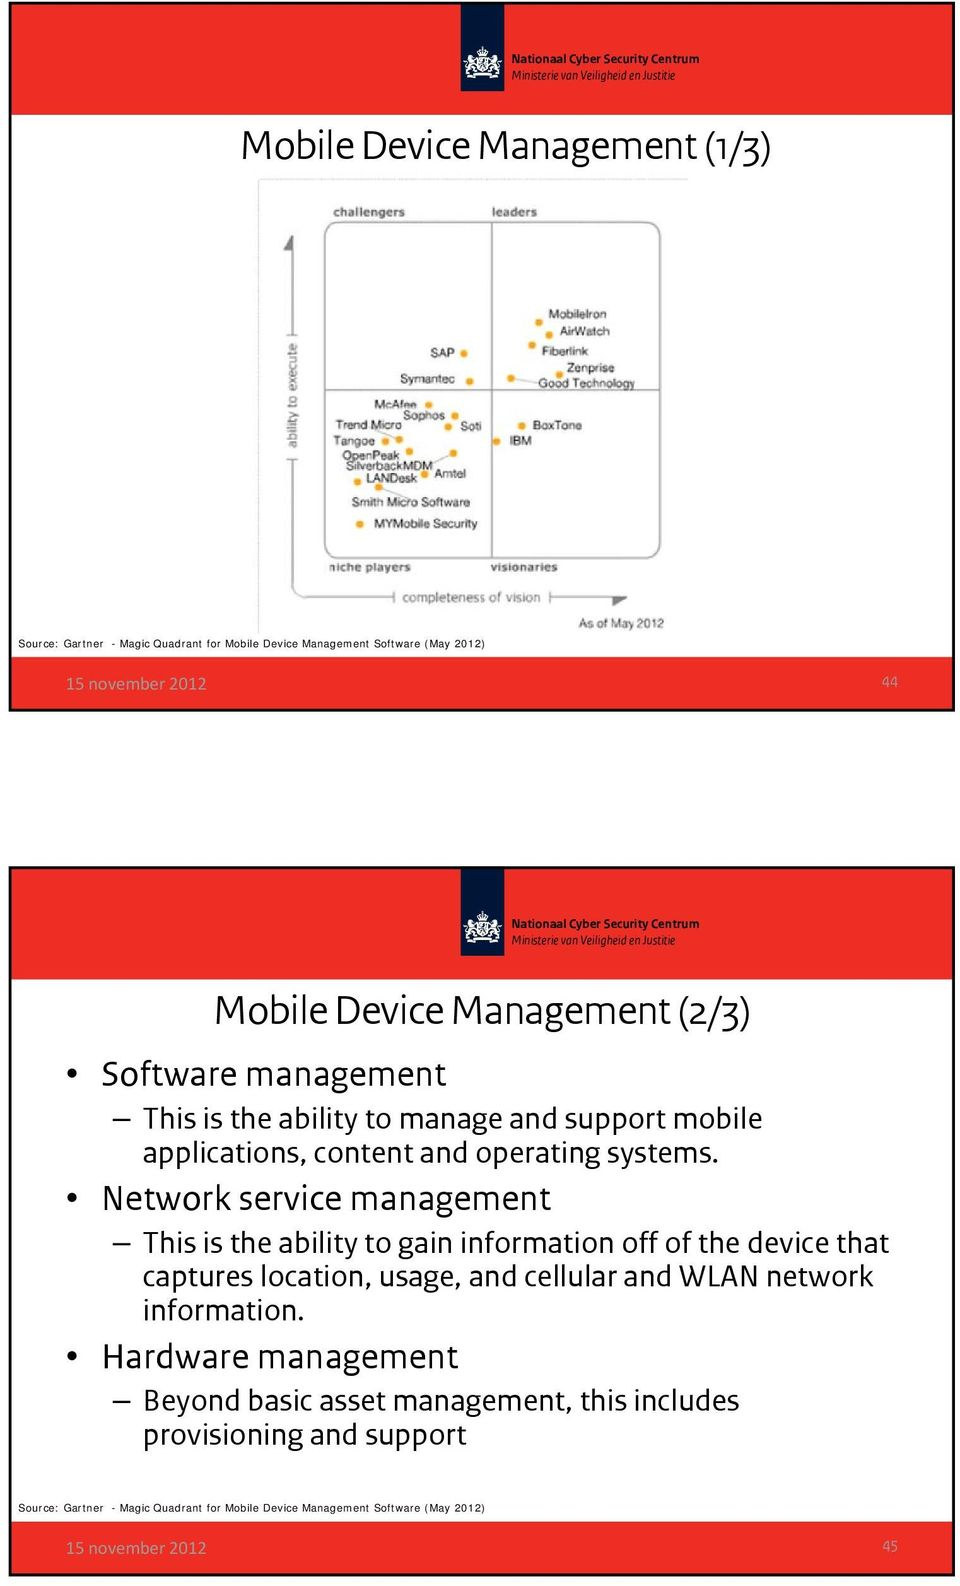 Network service management This is the ability to gain information off of the device that captures location, usage, and cellular and WLAN network